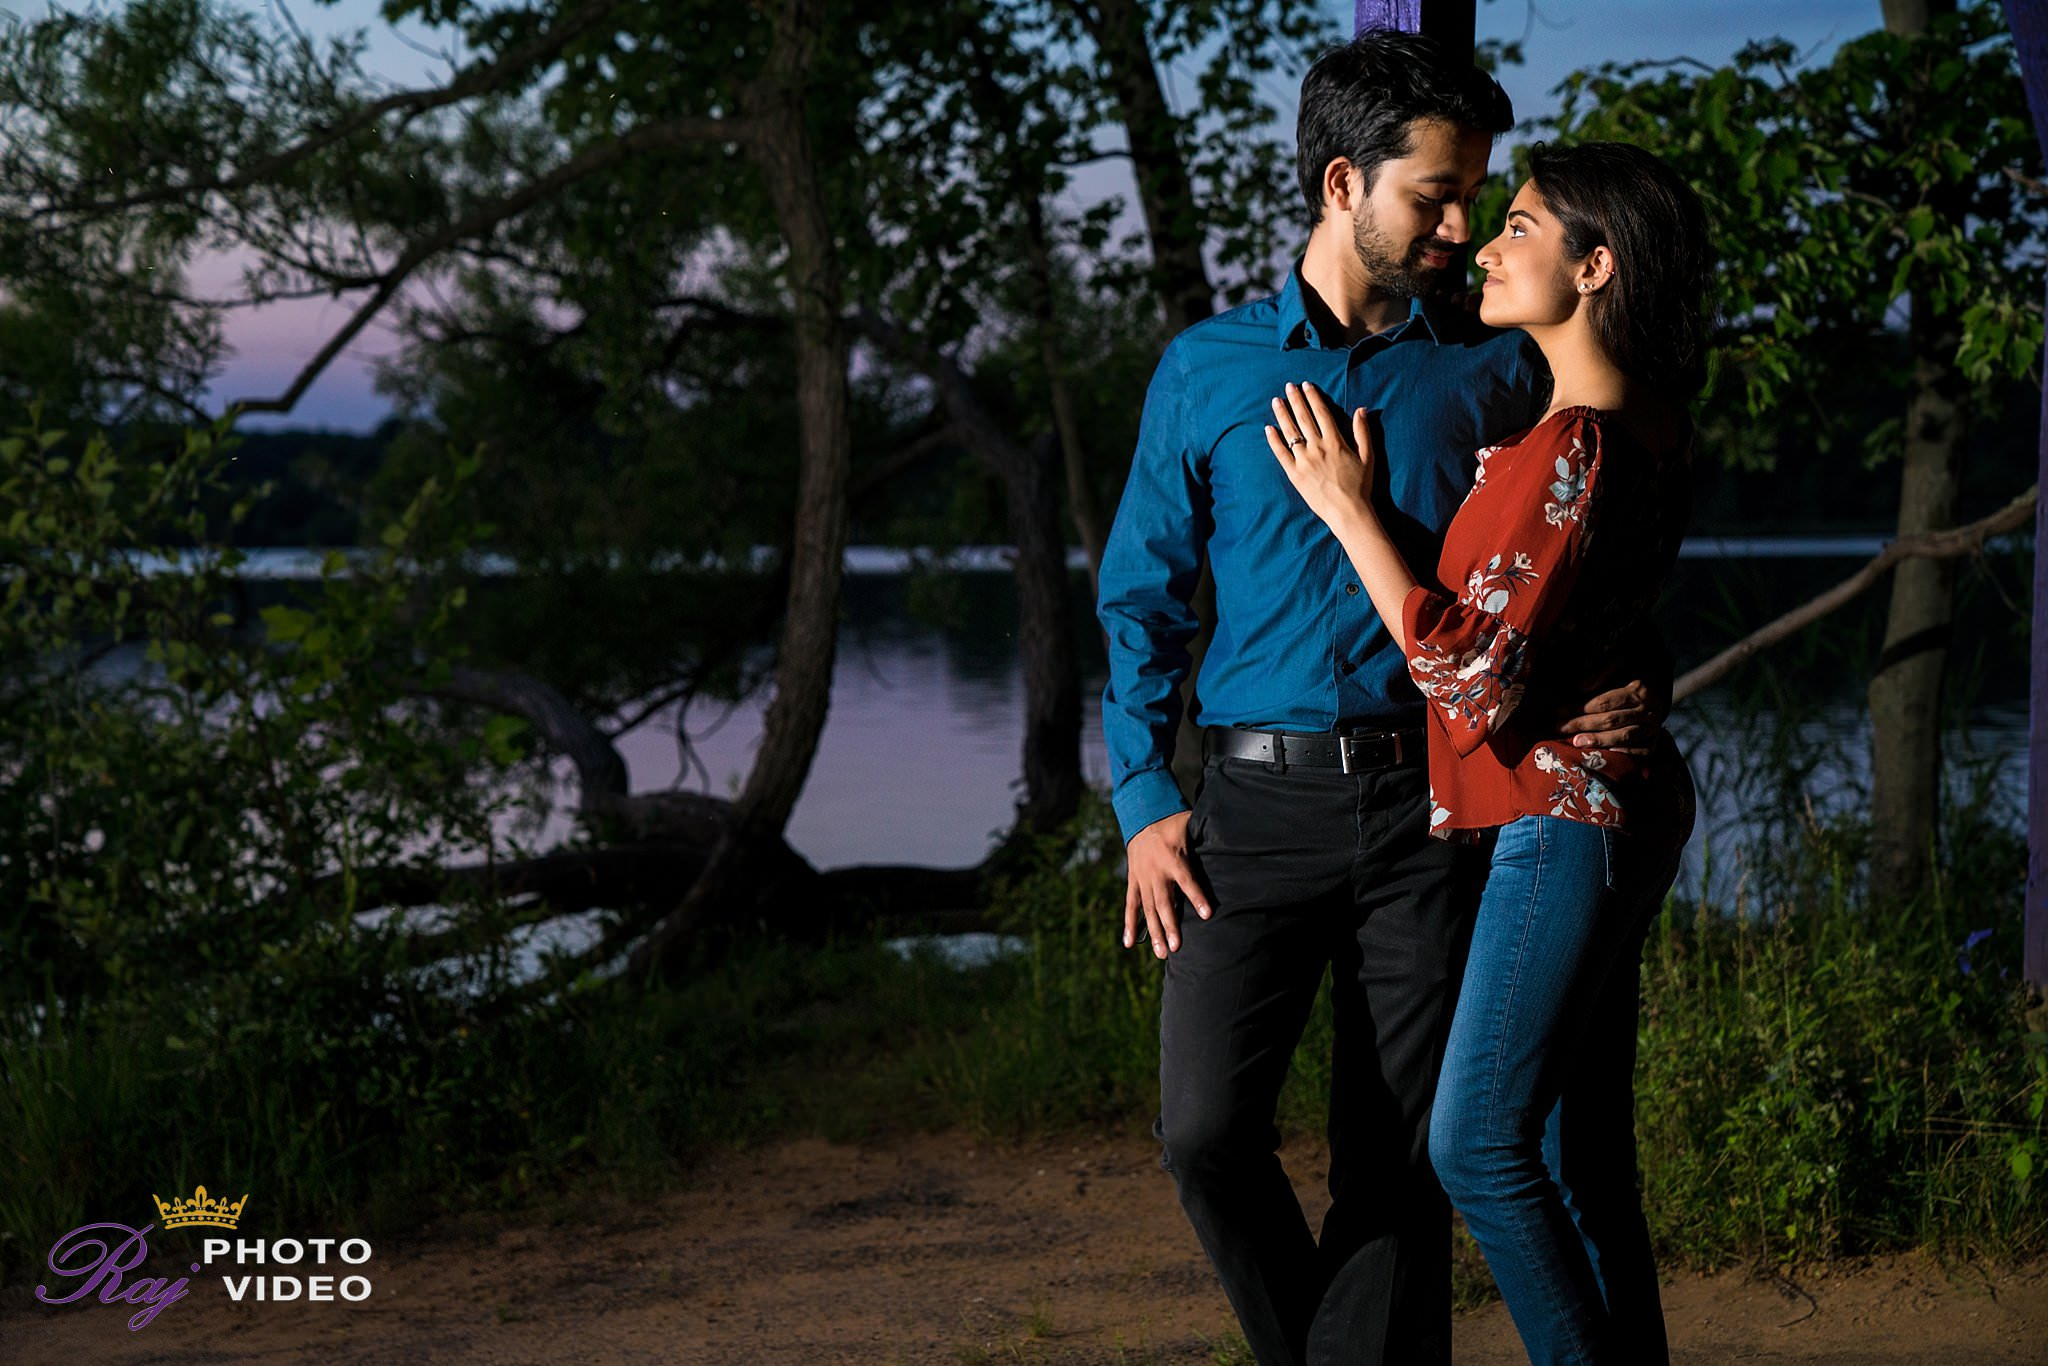 Mercer-County-Park-Engagement-Shoot-Shaili-Rahul-21_Raj_Photo_Video.jpg